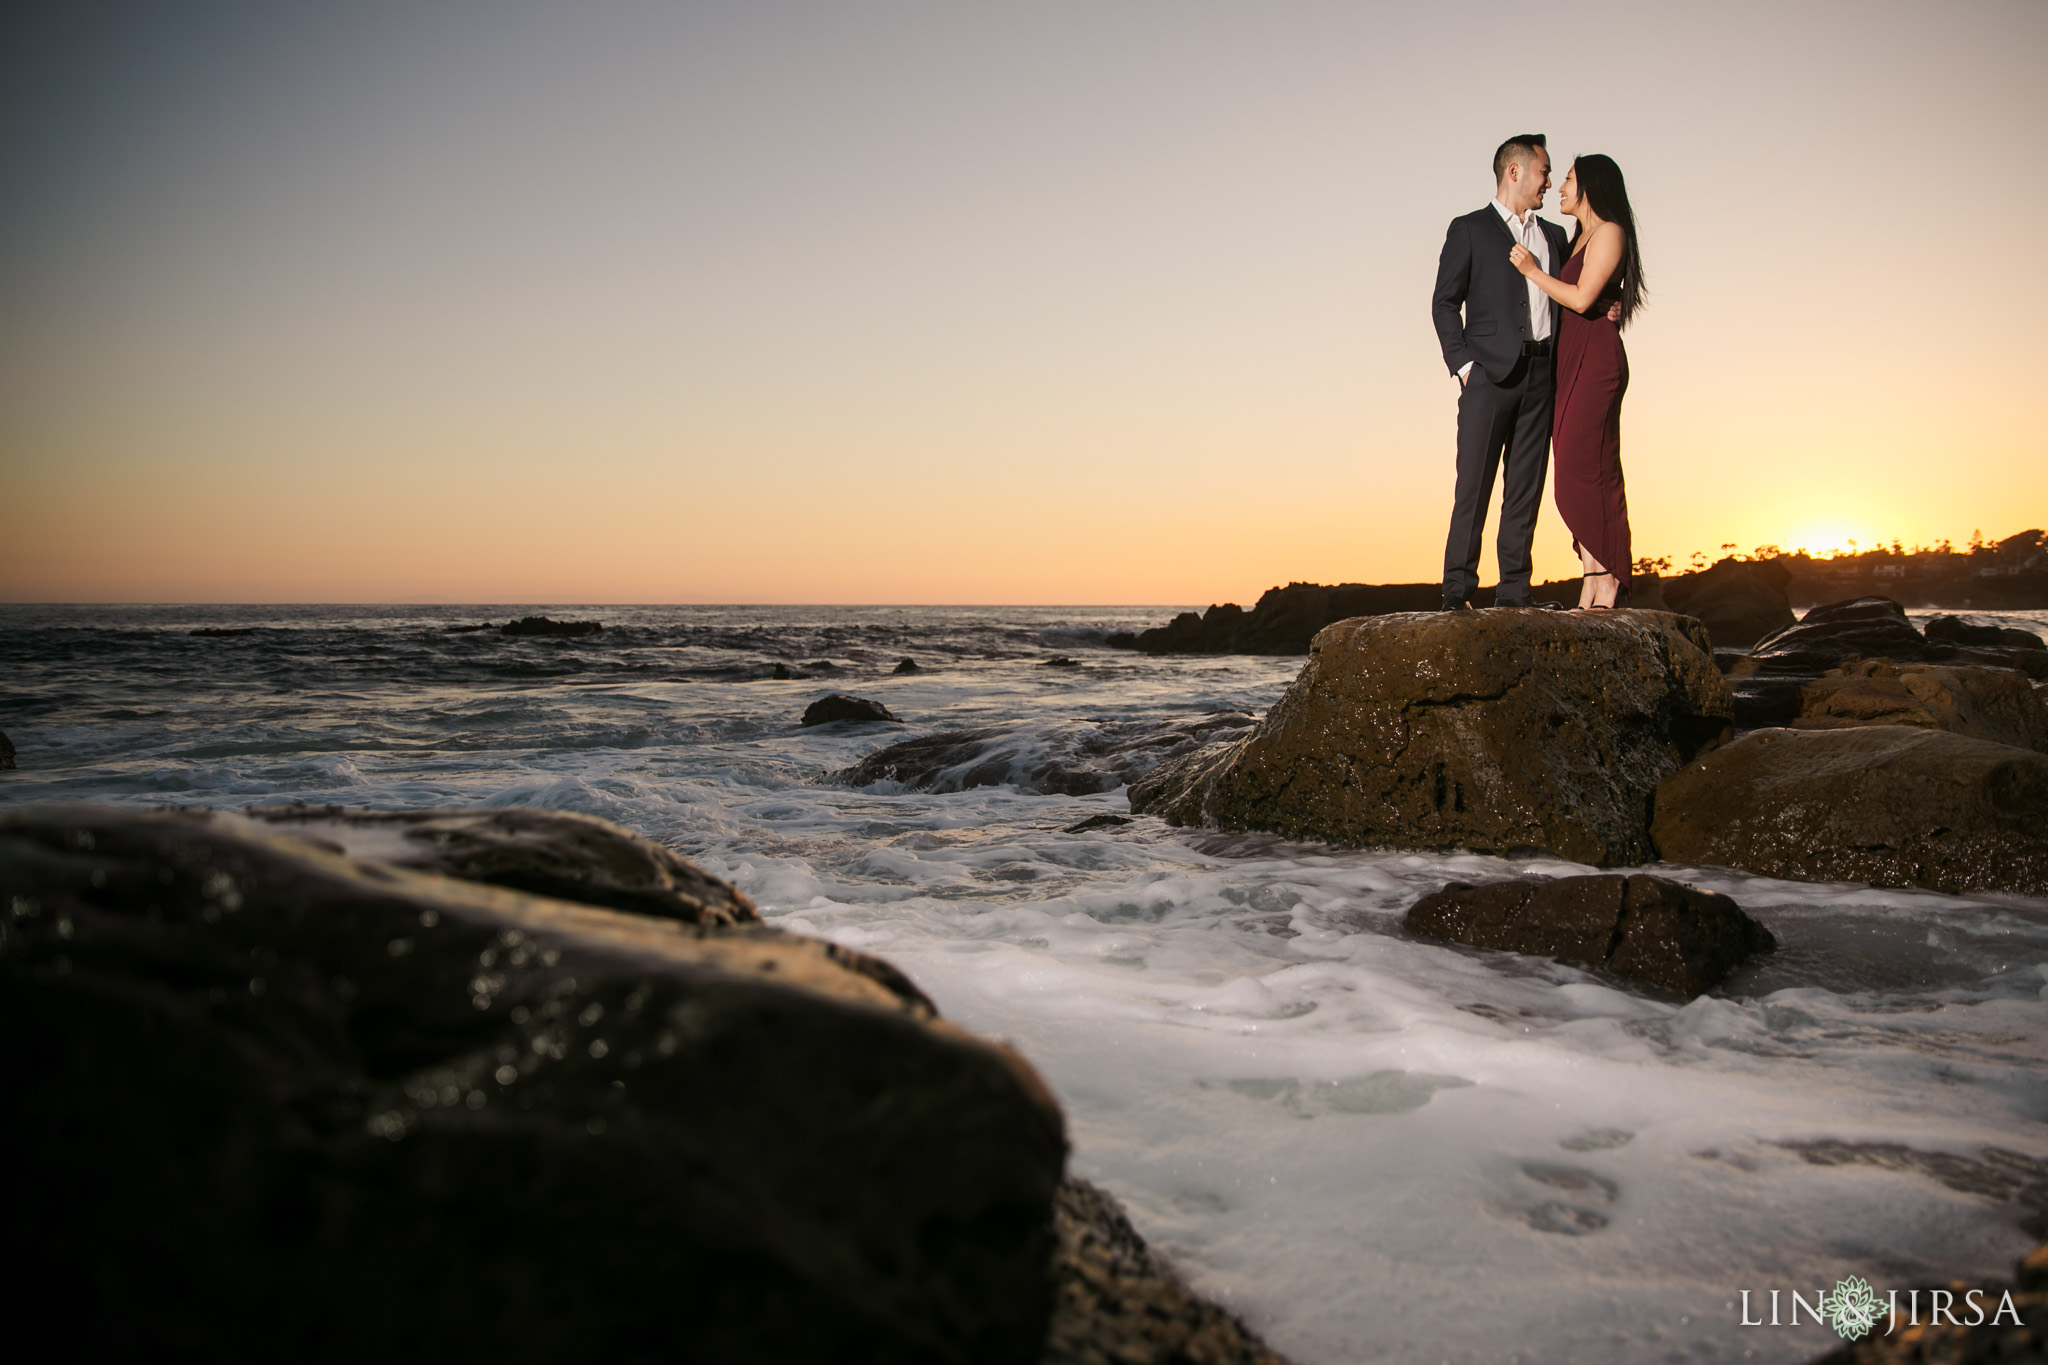 10 Heisler Beach Orange County Proposal Engagement Photography